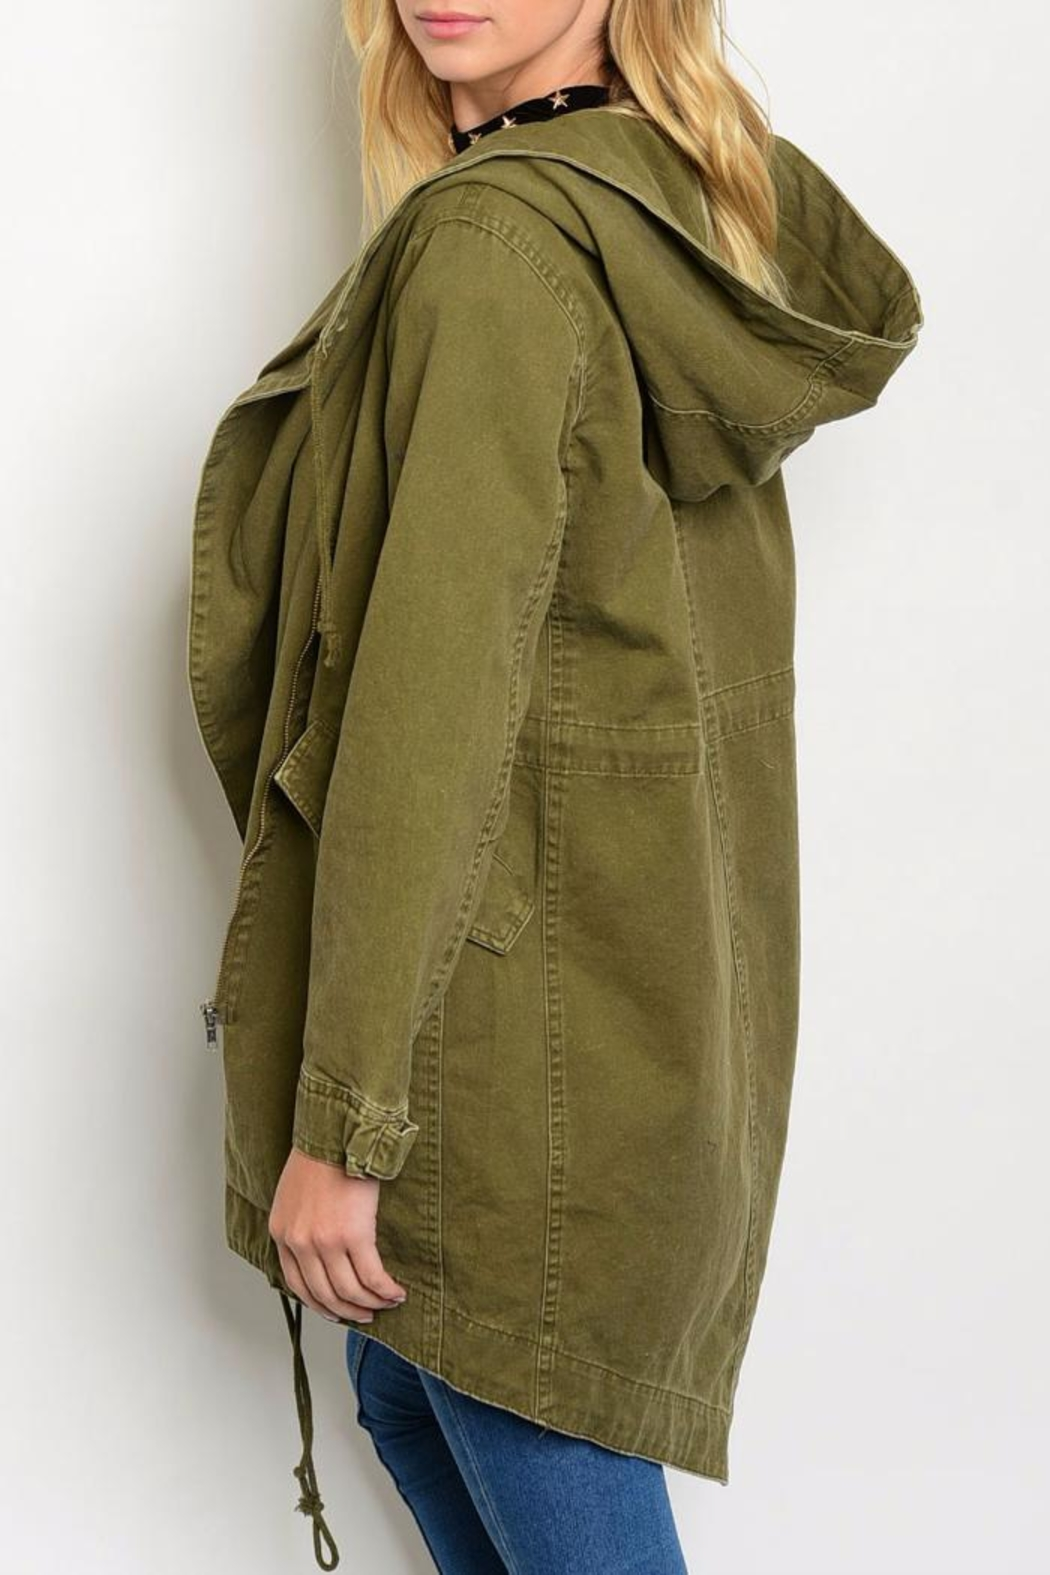 Cookie's Clothing Co  Army Green Jacket - Front Full Image